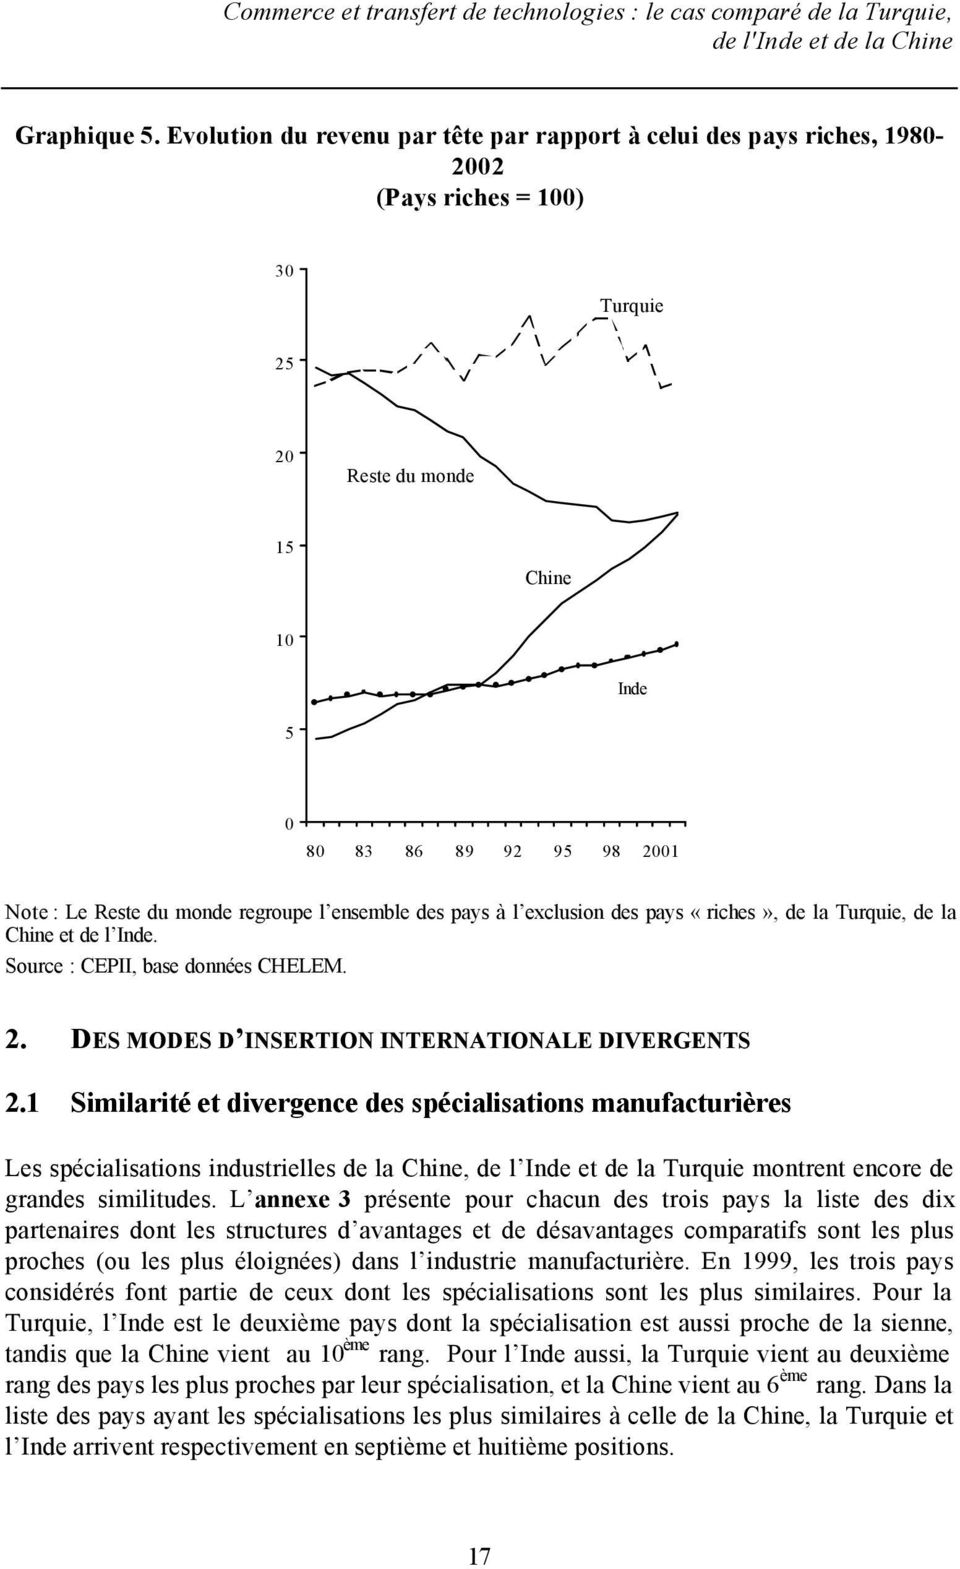 regroupe l ensemble des pays à l exclusion des pays «riches», de la Turquie, de la Chine et de l Inde. Source : CEPII, base données CHELEM. 2. DES MODES D INSERTION INTERNATIONALE DIVERGENTS 2.